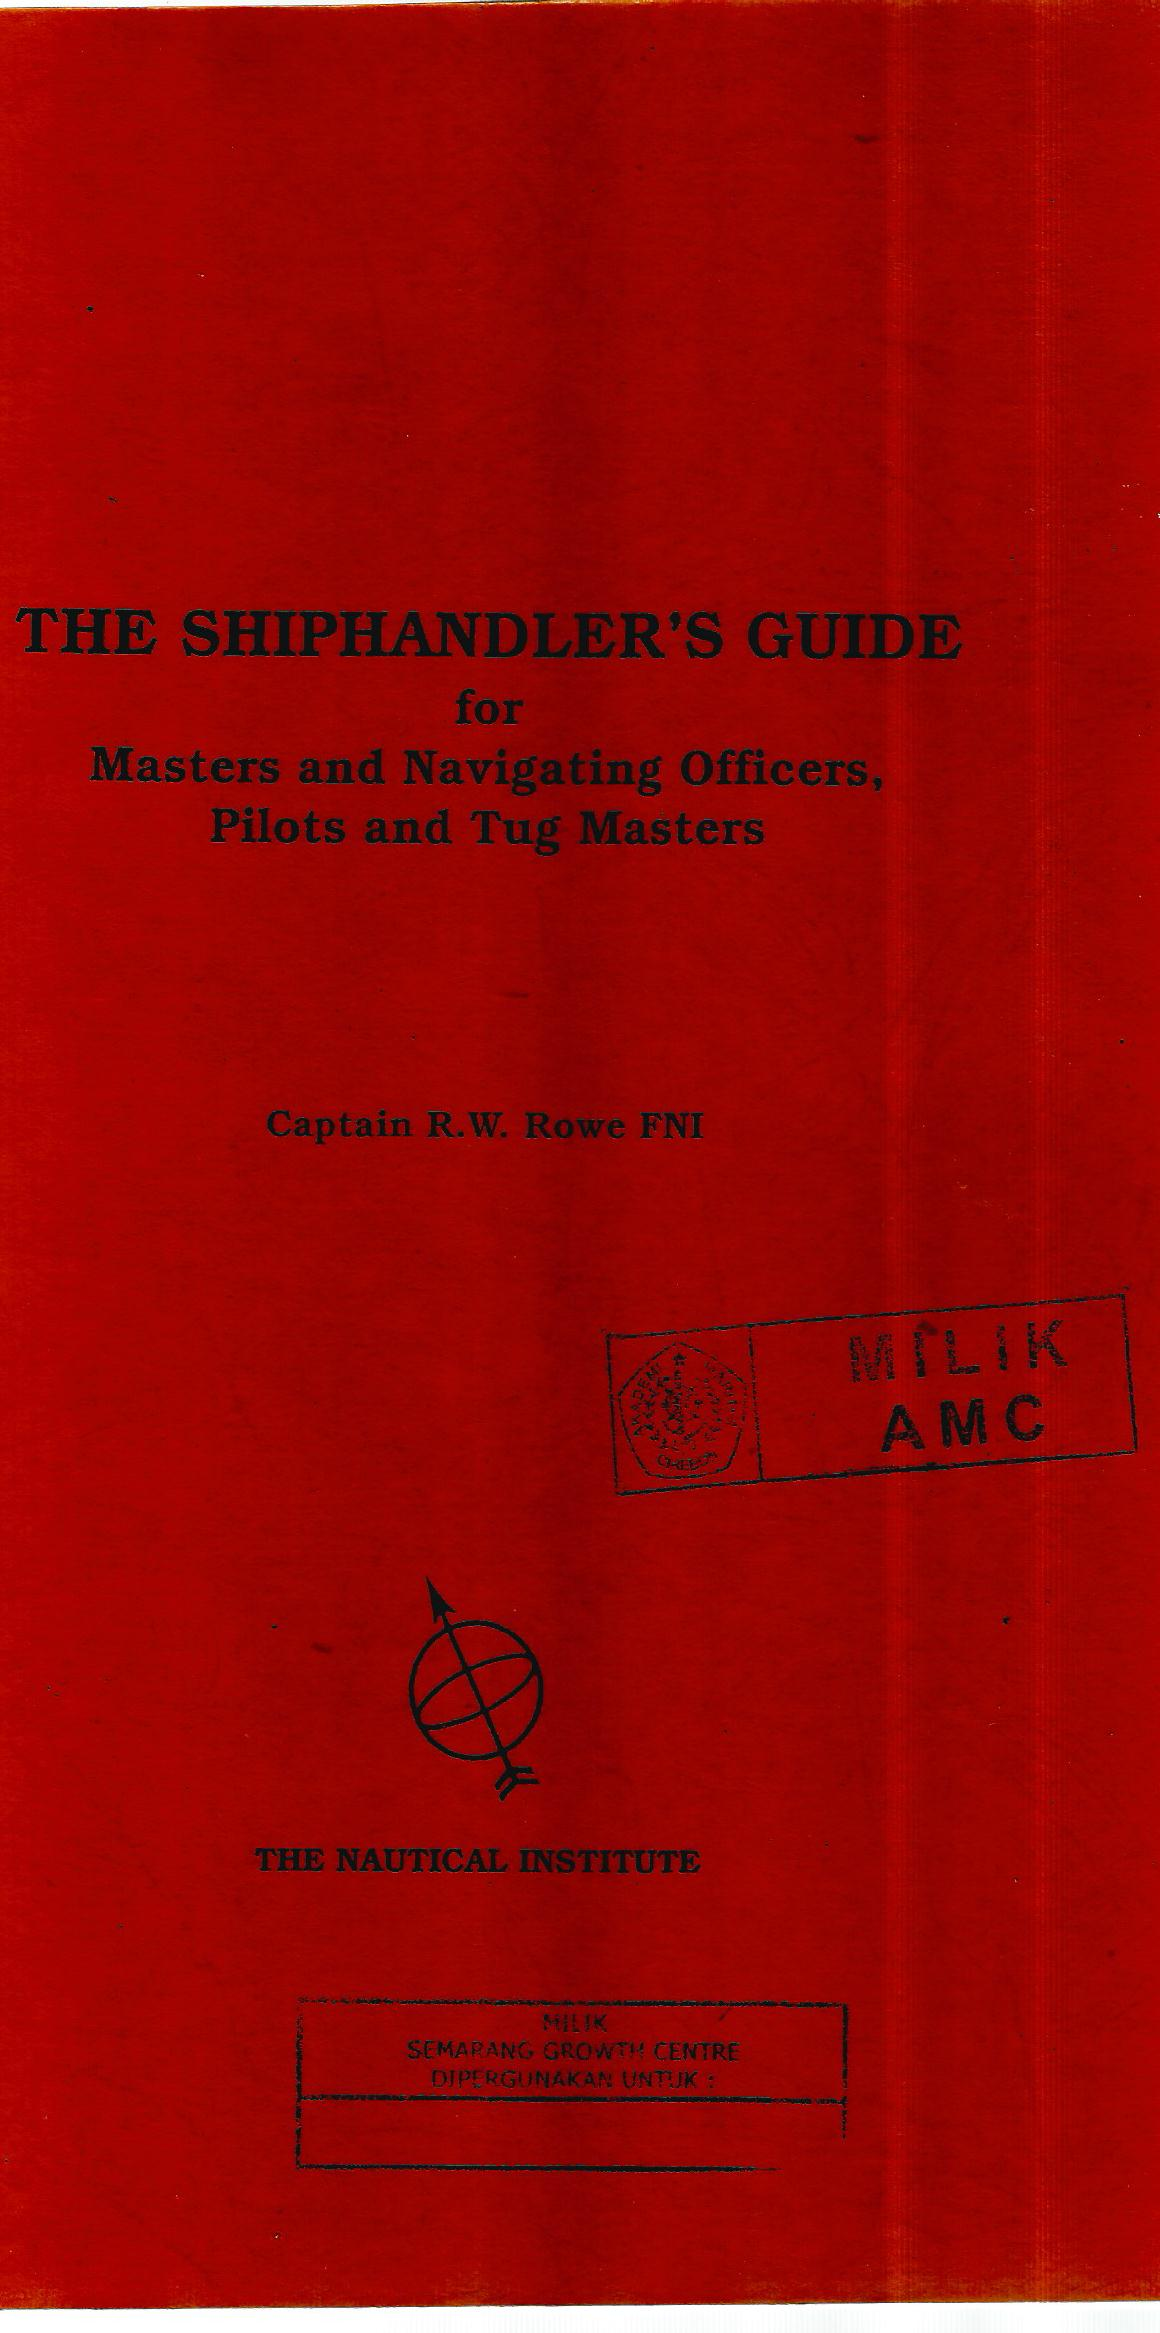 THE SHIPHANDLERS GUIDE